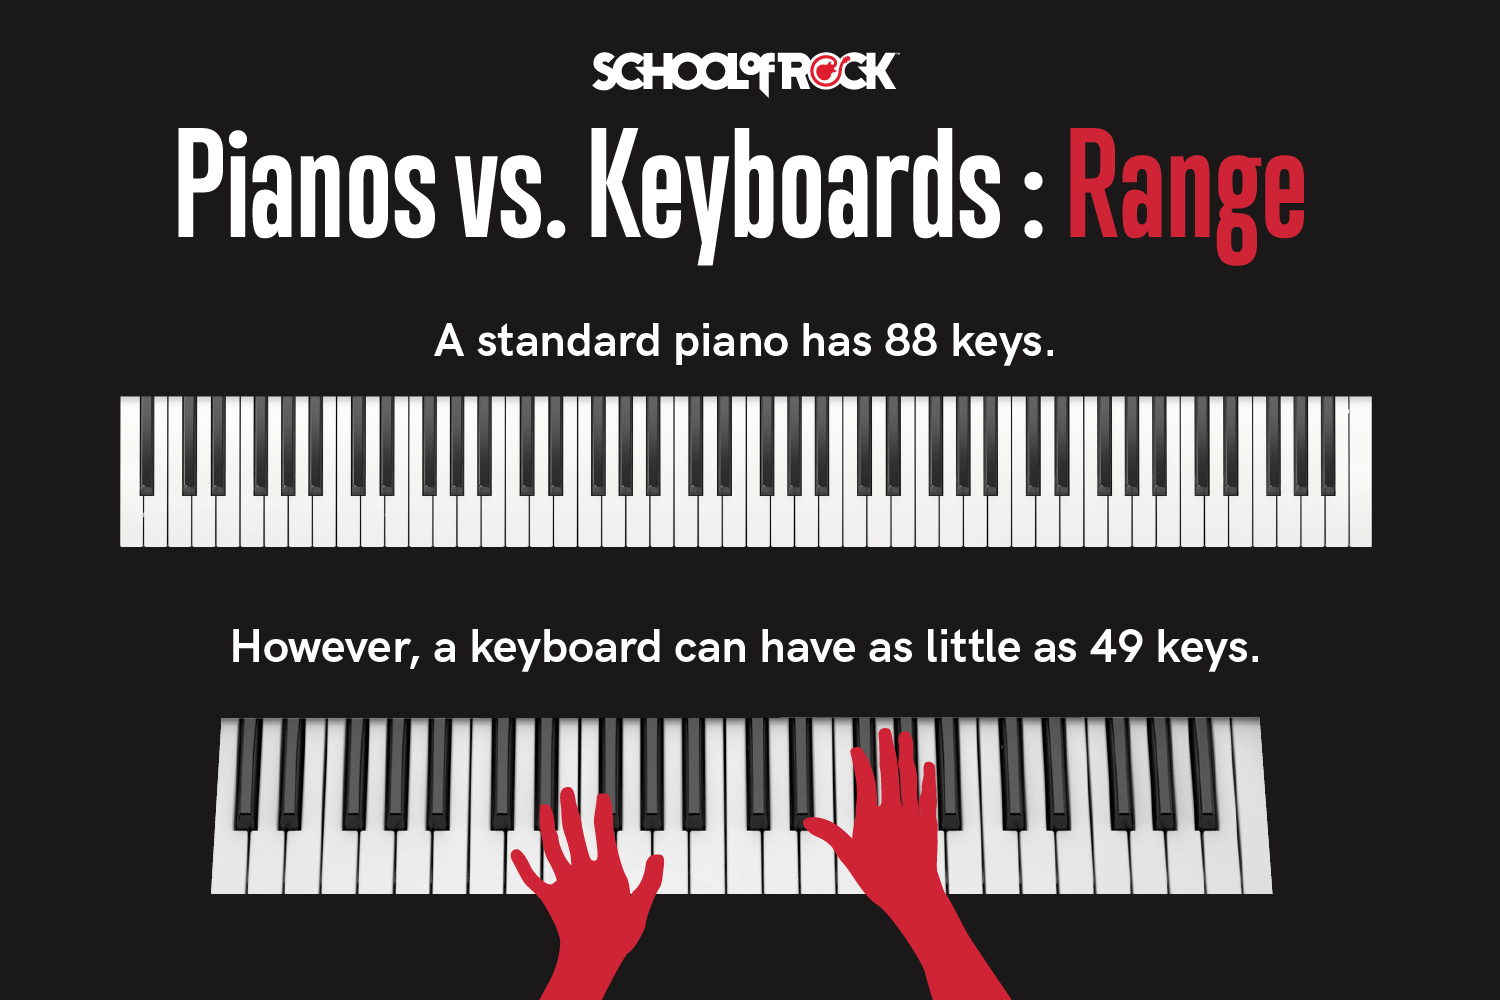 When comparing a piano versus a keyboard a standard piano has 88 keys while a keyboard can have as little as 49 keys.